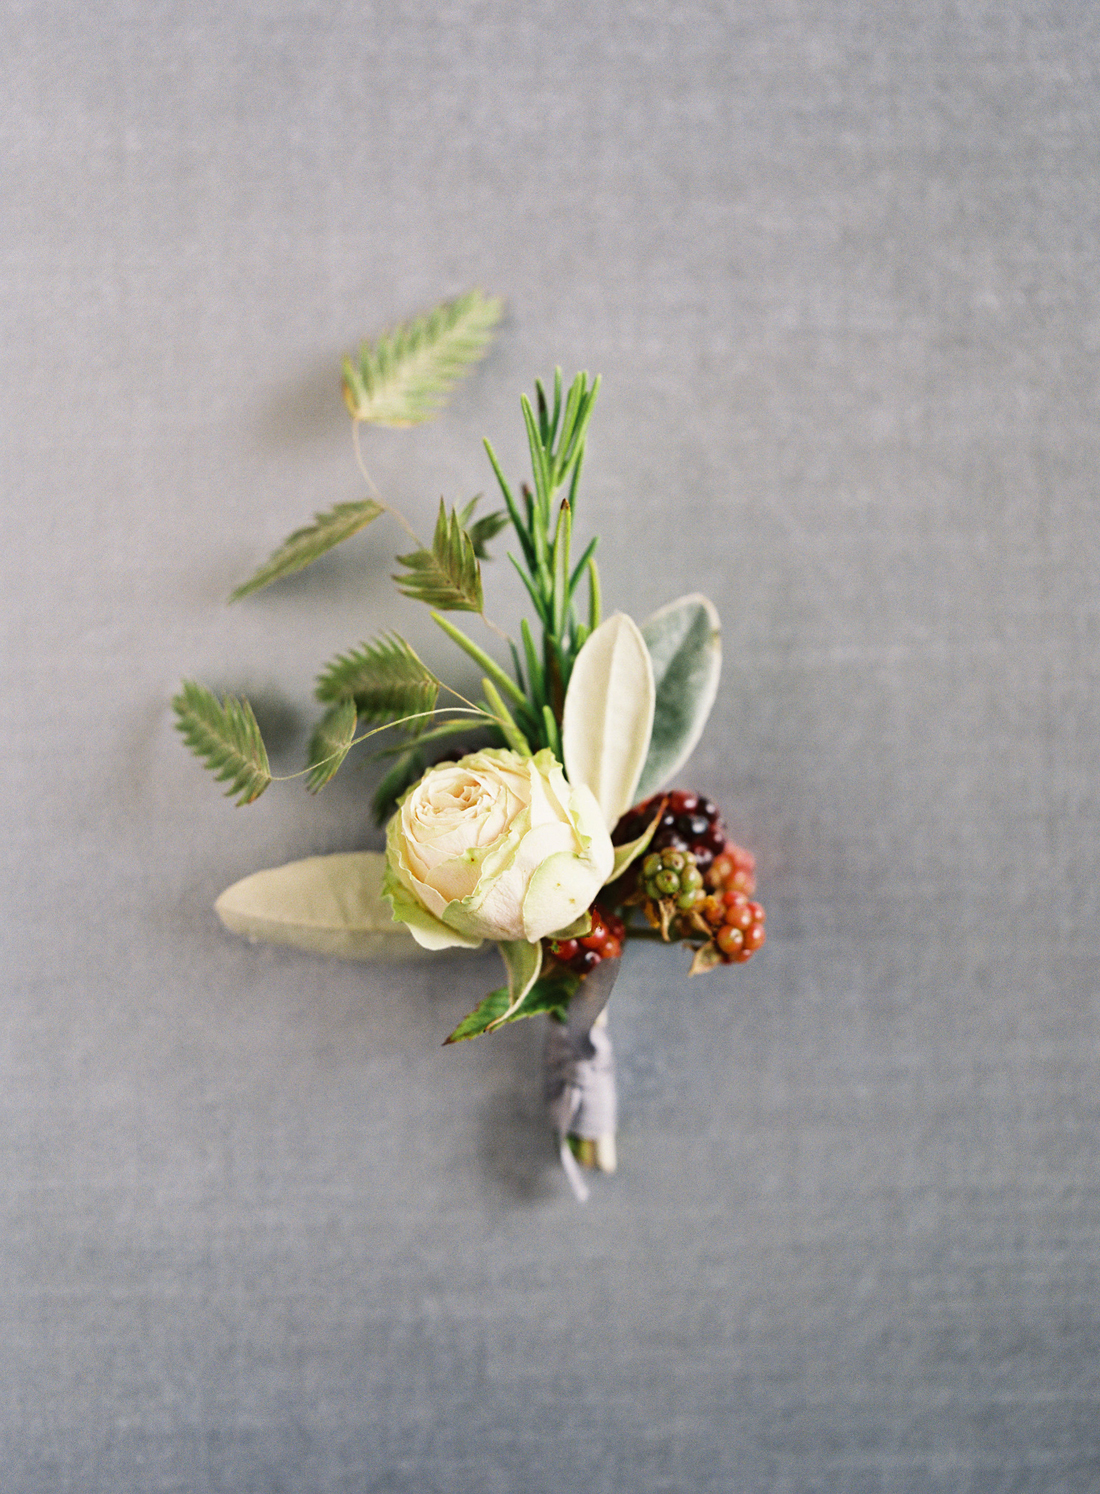 white bloom, berries, and green foliage boutonnieres